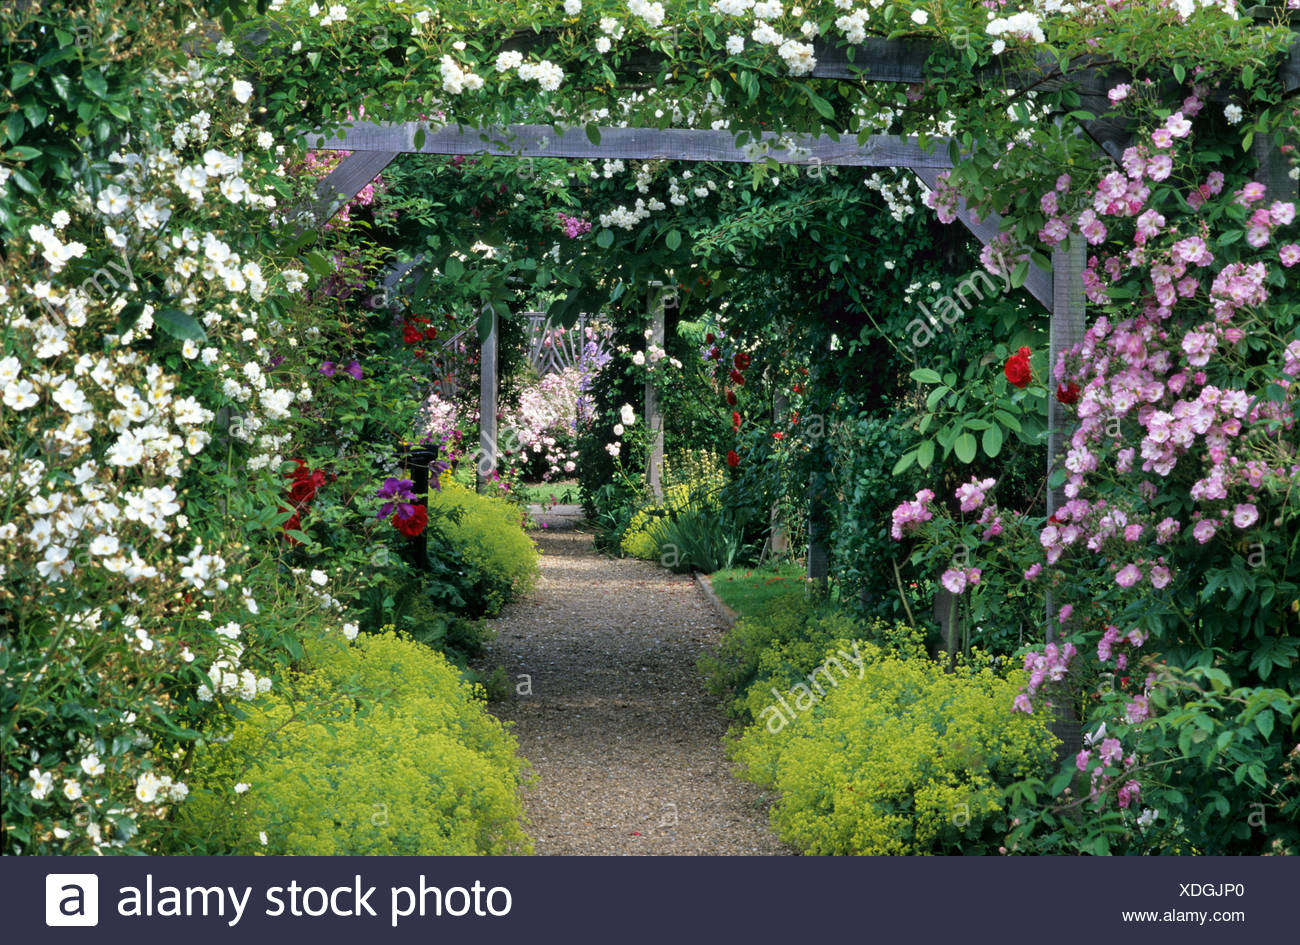 Mannington Hall, Norfolk, Rose Arbour, Wooden Garden Arch, Alchemilla  Mollis, Climbing Plants, Pink, White Flowers, Covered Path